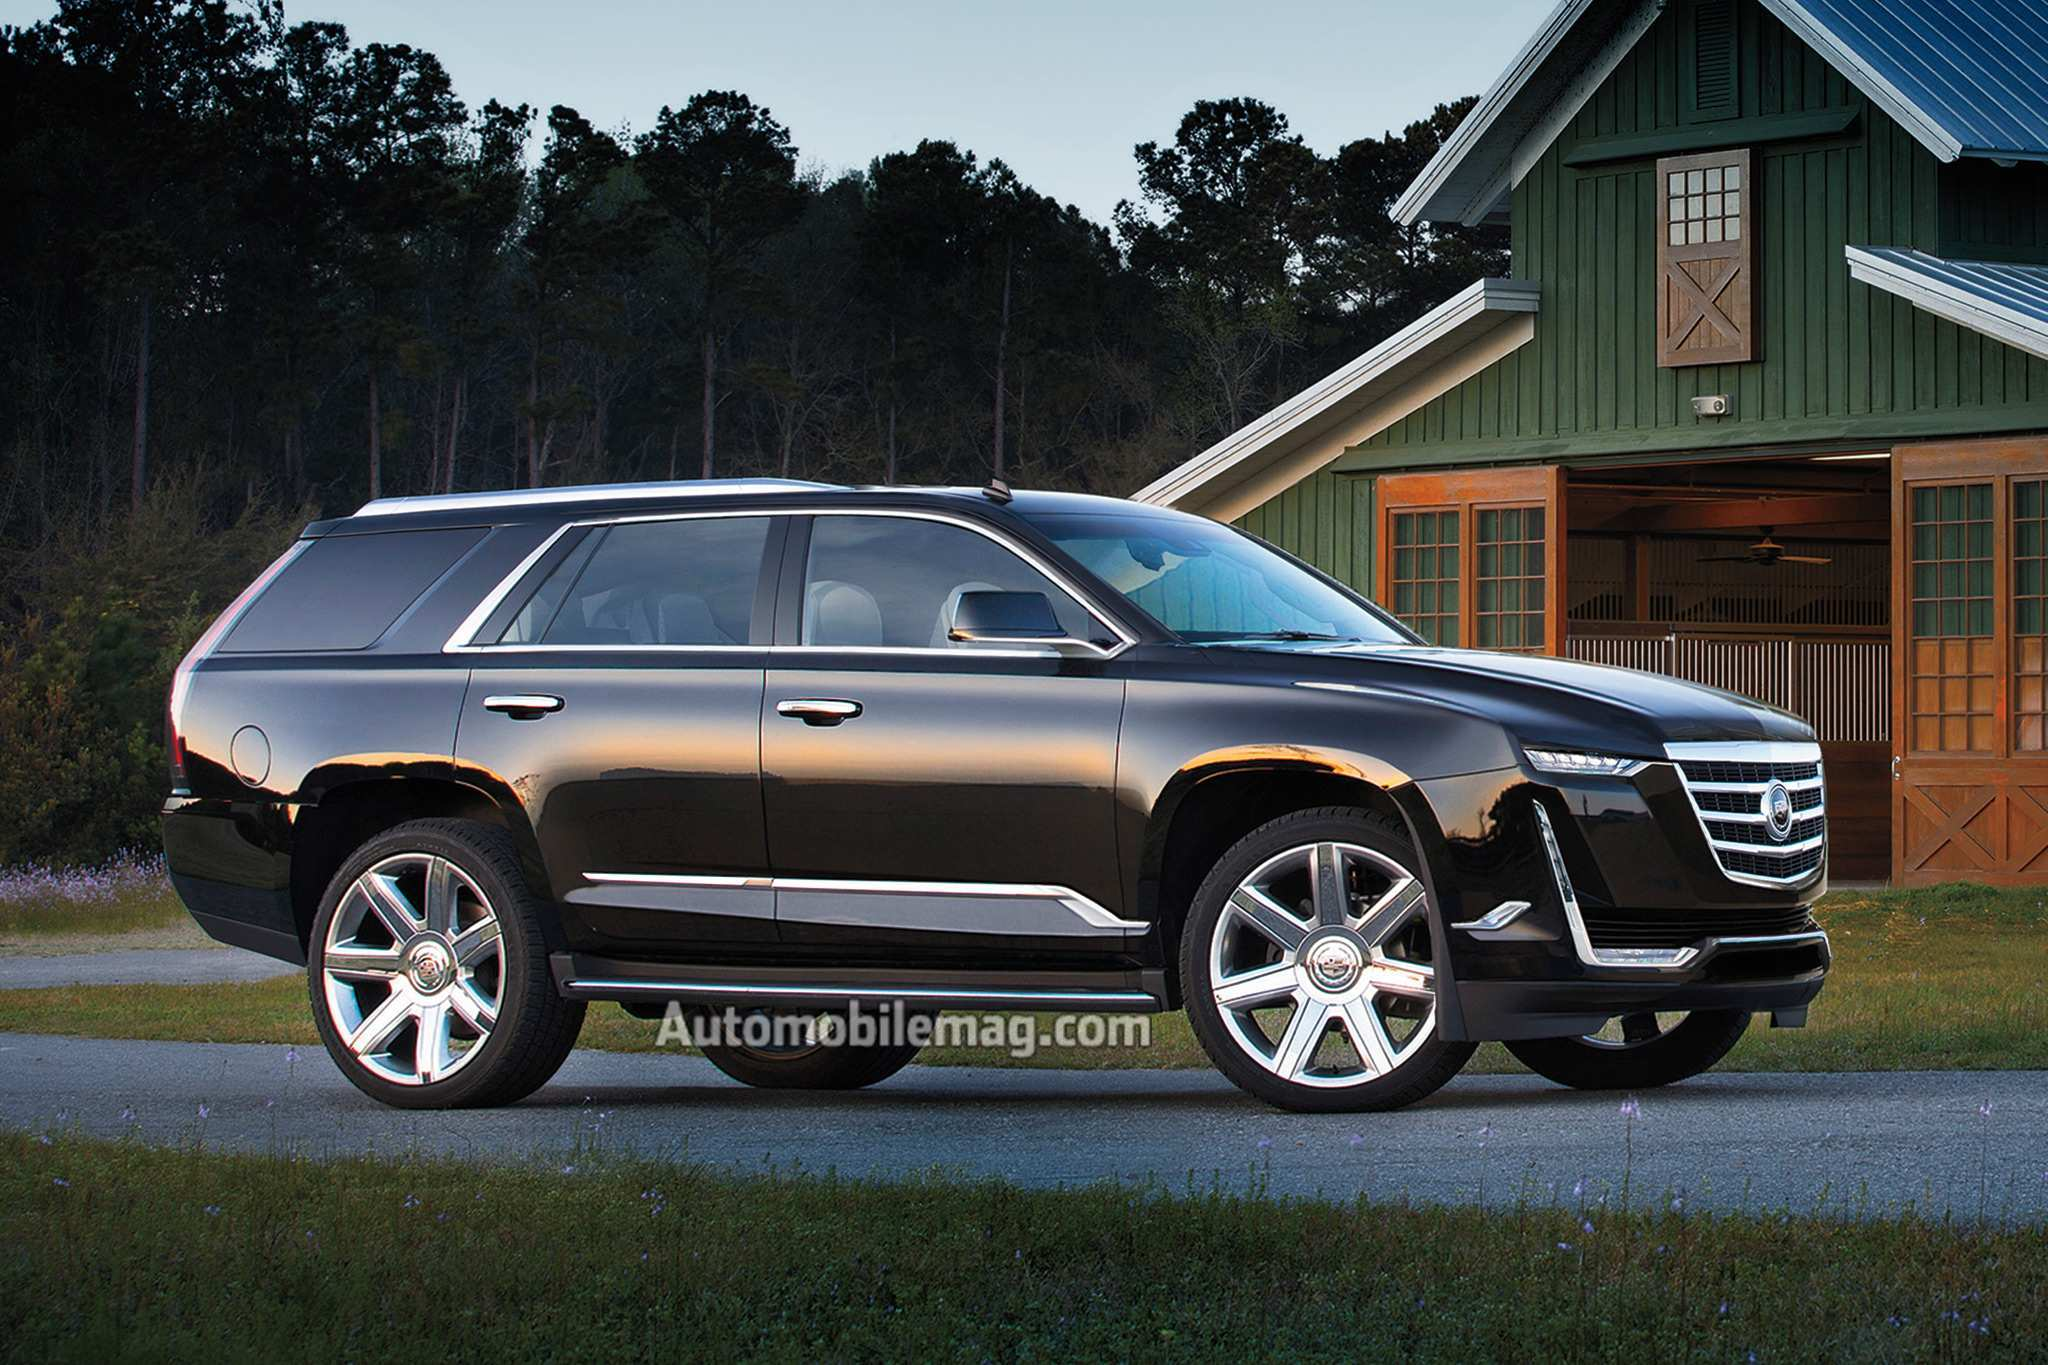 45 Great 2019 Cadillac Release Date Spy Shoot by 2019 Cadillac Release Date